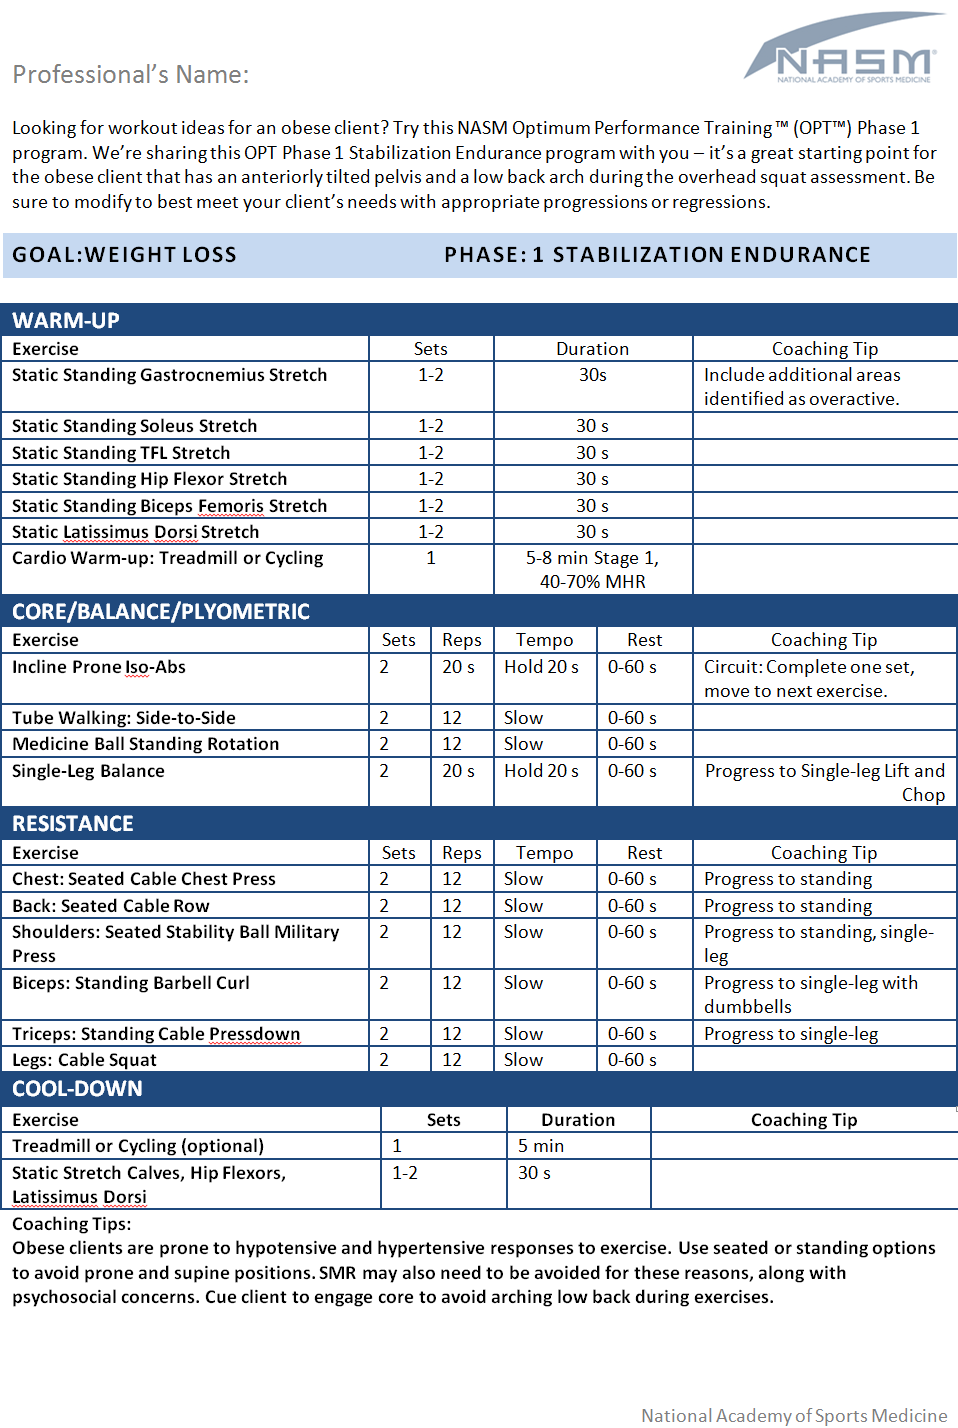 obese client chart with workout ideas